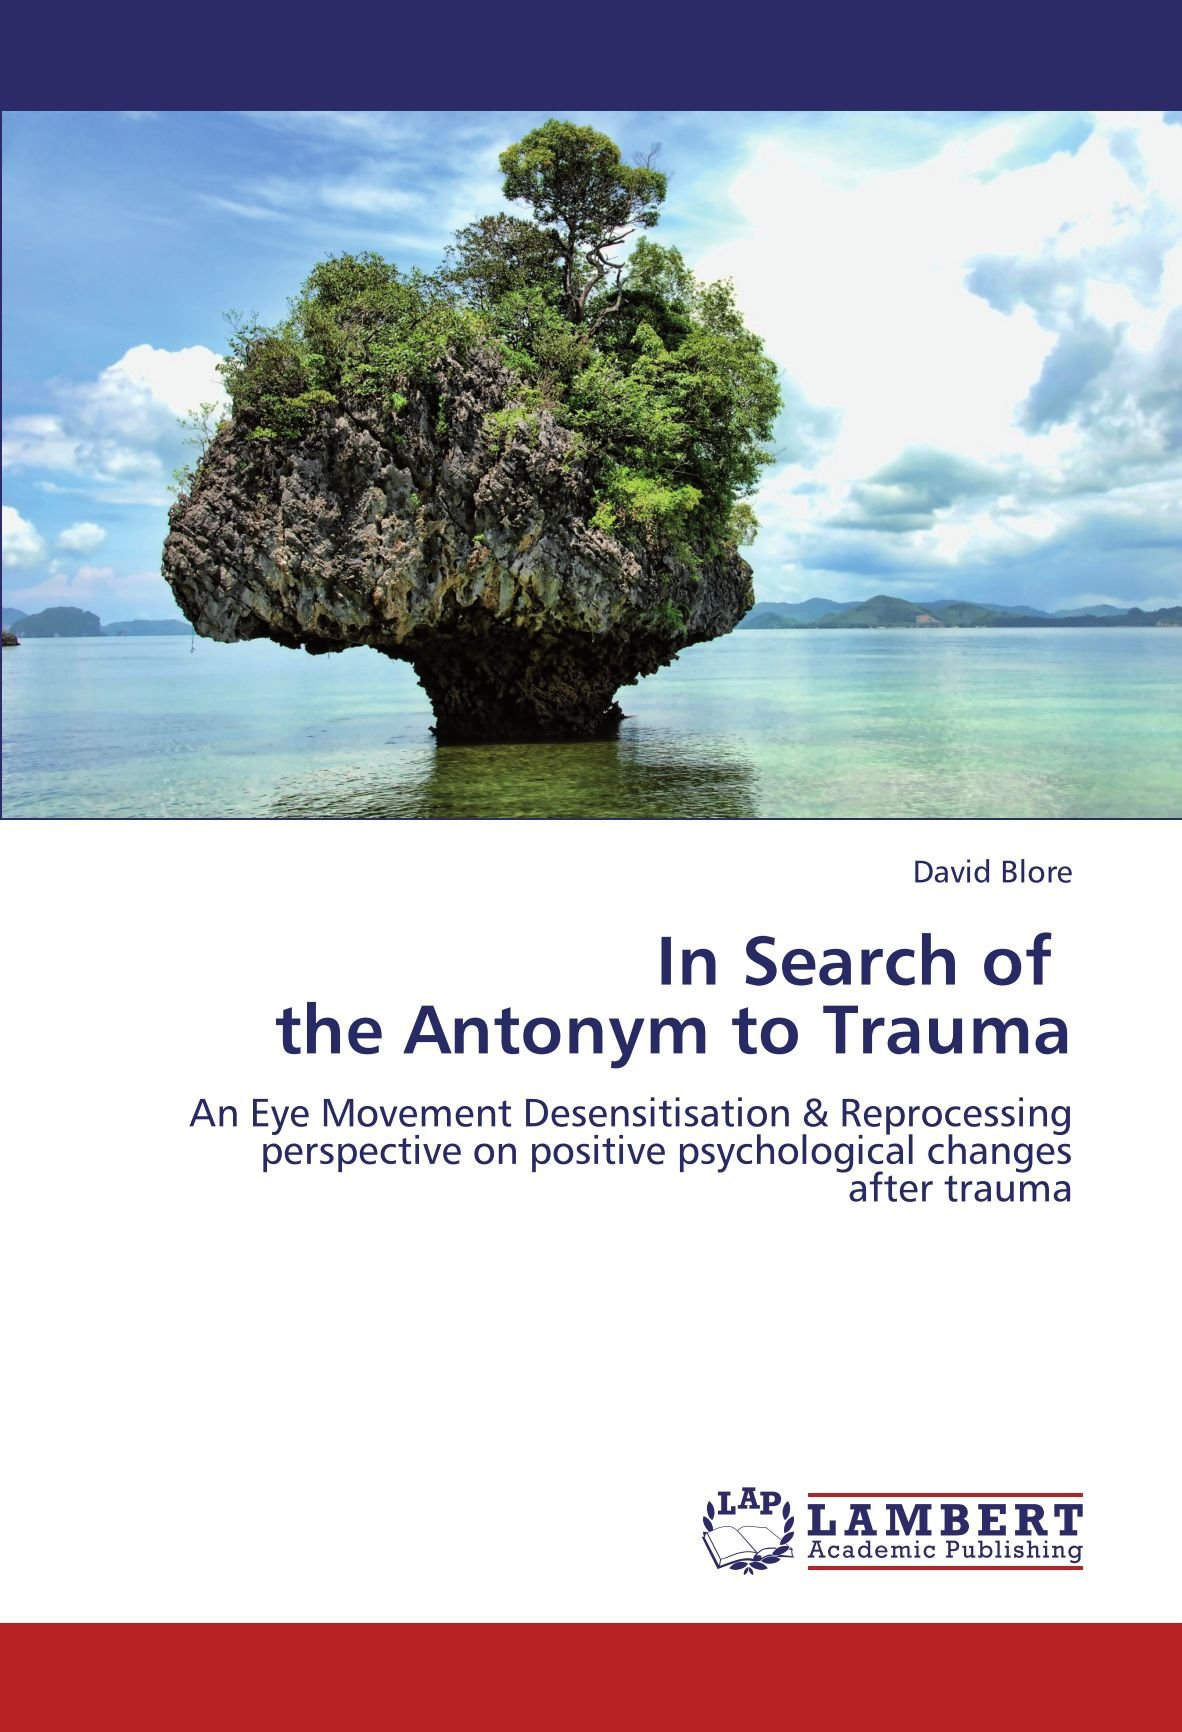 In Search of   the Antonym to Trauma: An Eye Movement Desensitisation & Reprocessing perspective on positive psychological changes  after trauma pdf